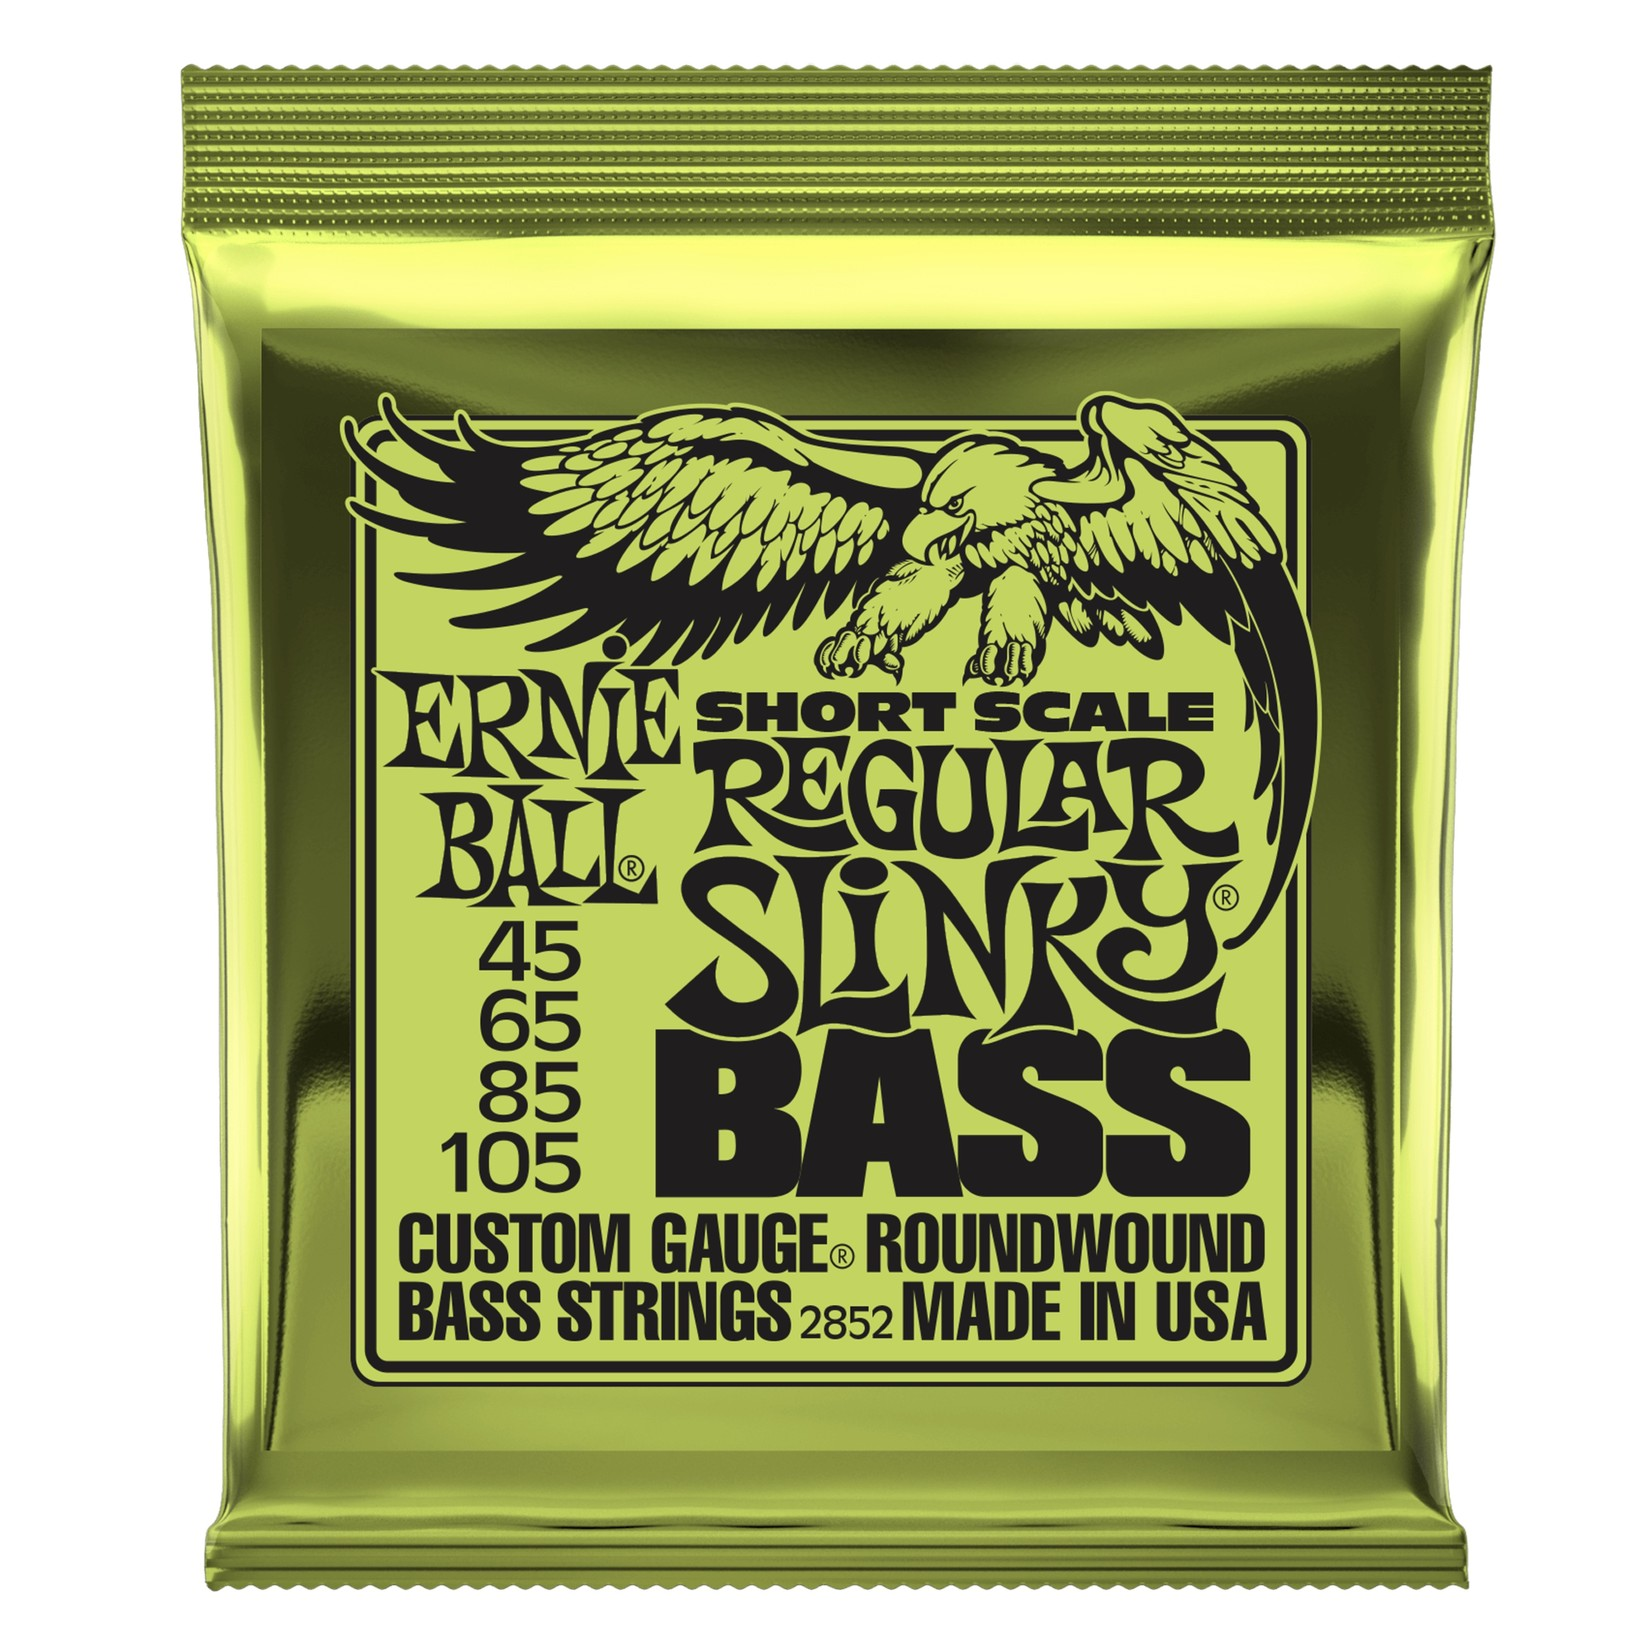 Ernie Ball Ernie Ball Regular Slinky Nickel Wound Short Scale Bass Strings - 45-105 Gauge